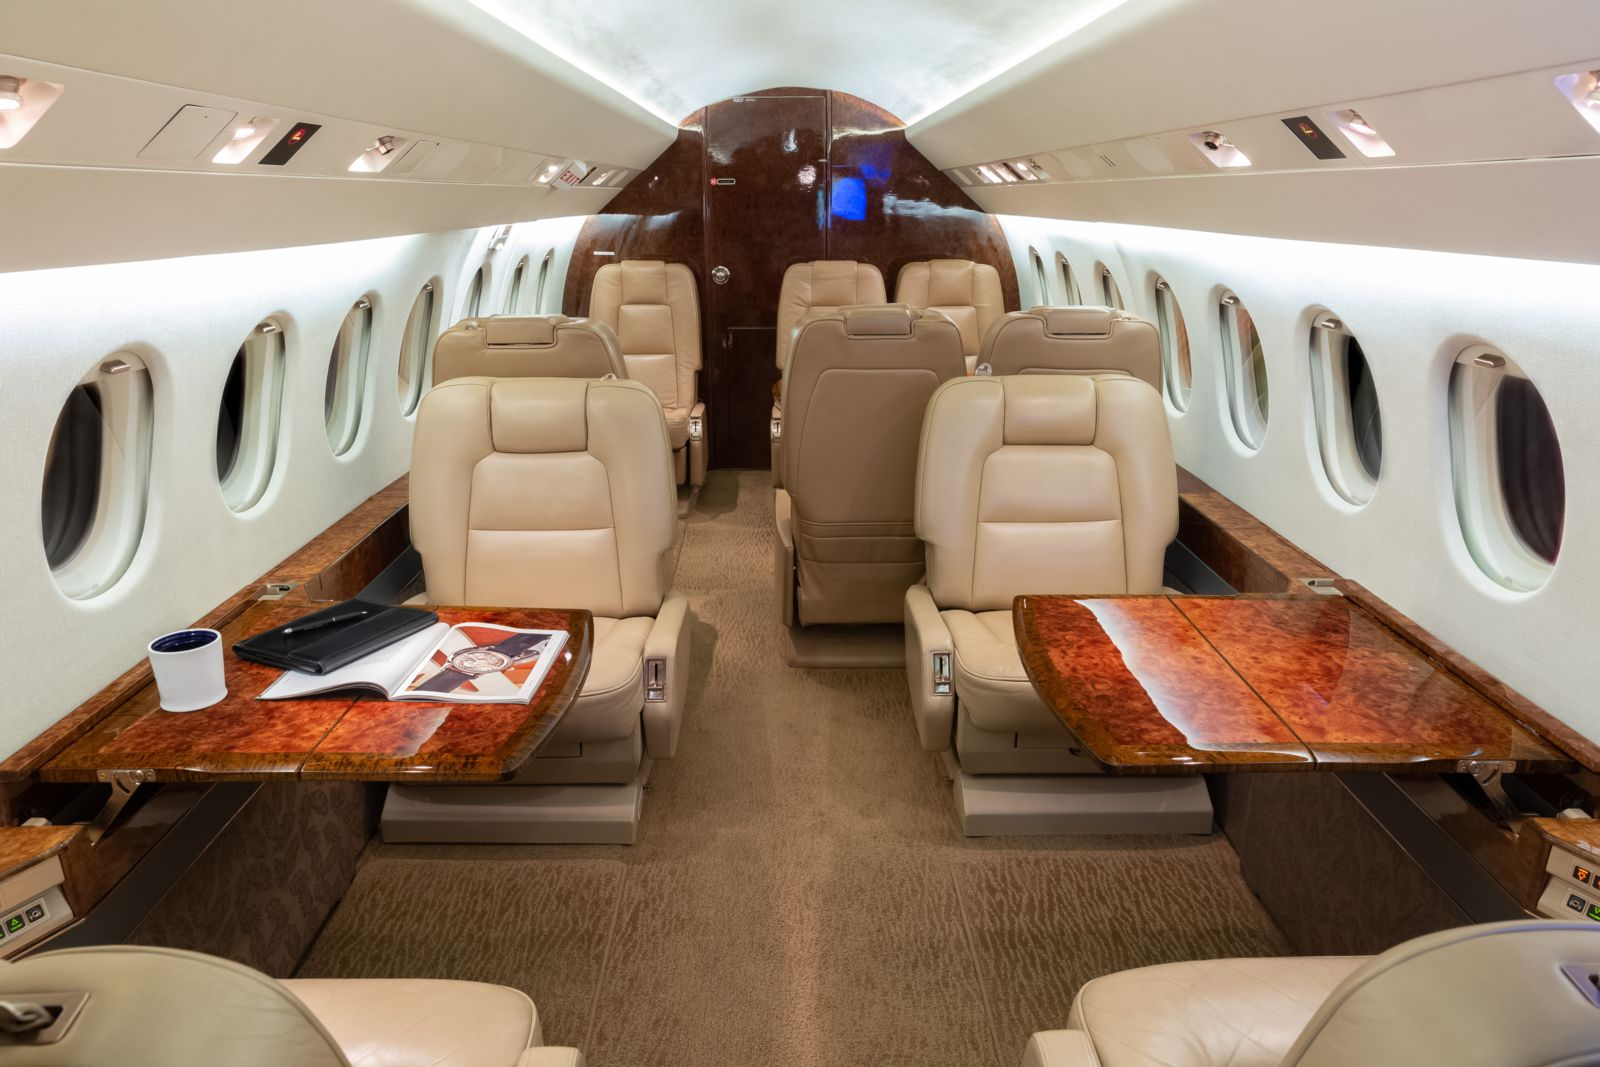 Dassault Falcon 2000  S/N 60 for sale | gallery image: /userfiles/images/F2000_sn60/fwd%20aft.jpg